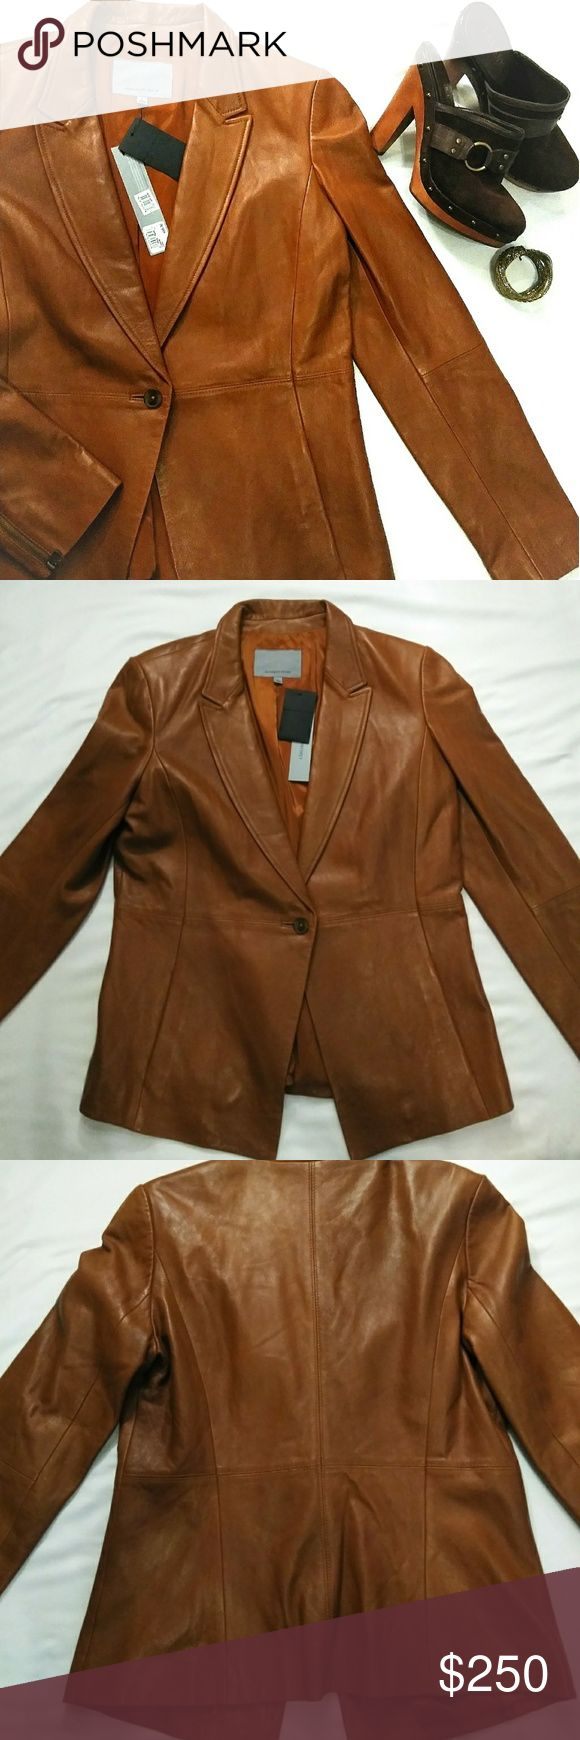 NWT Classiques Entier Nordstrom Leather Jacket New, never